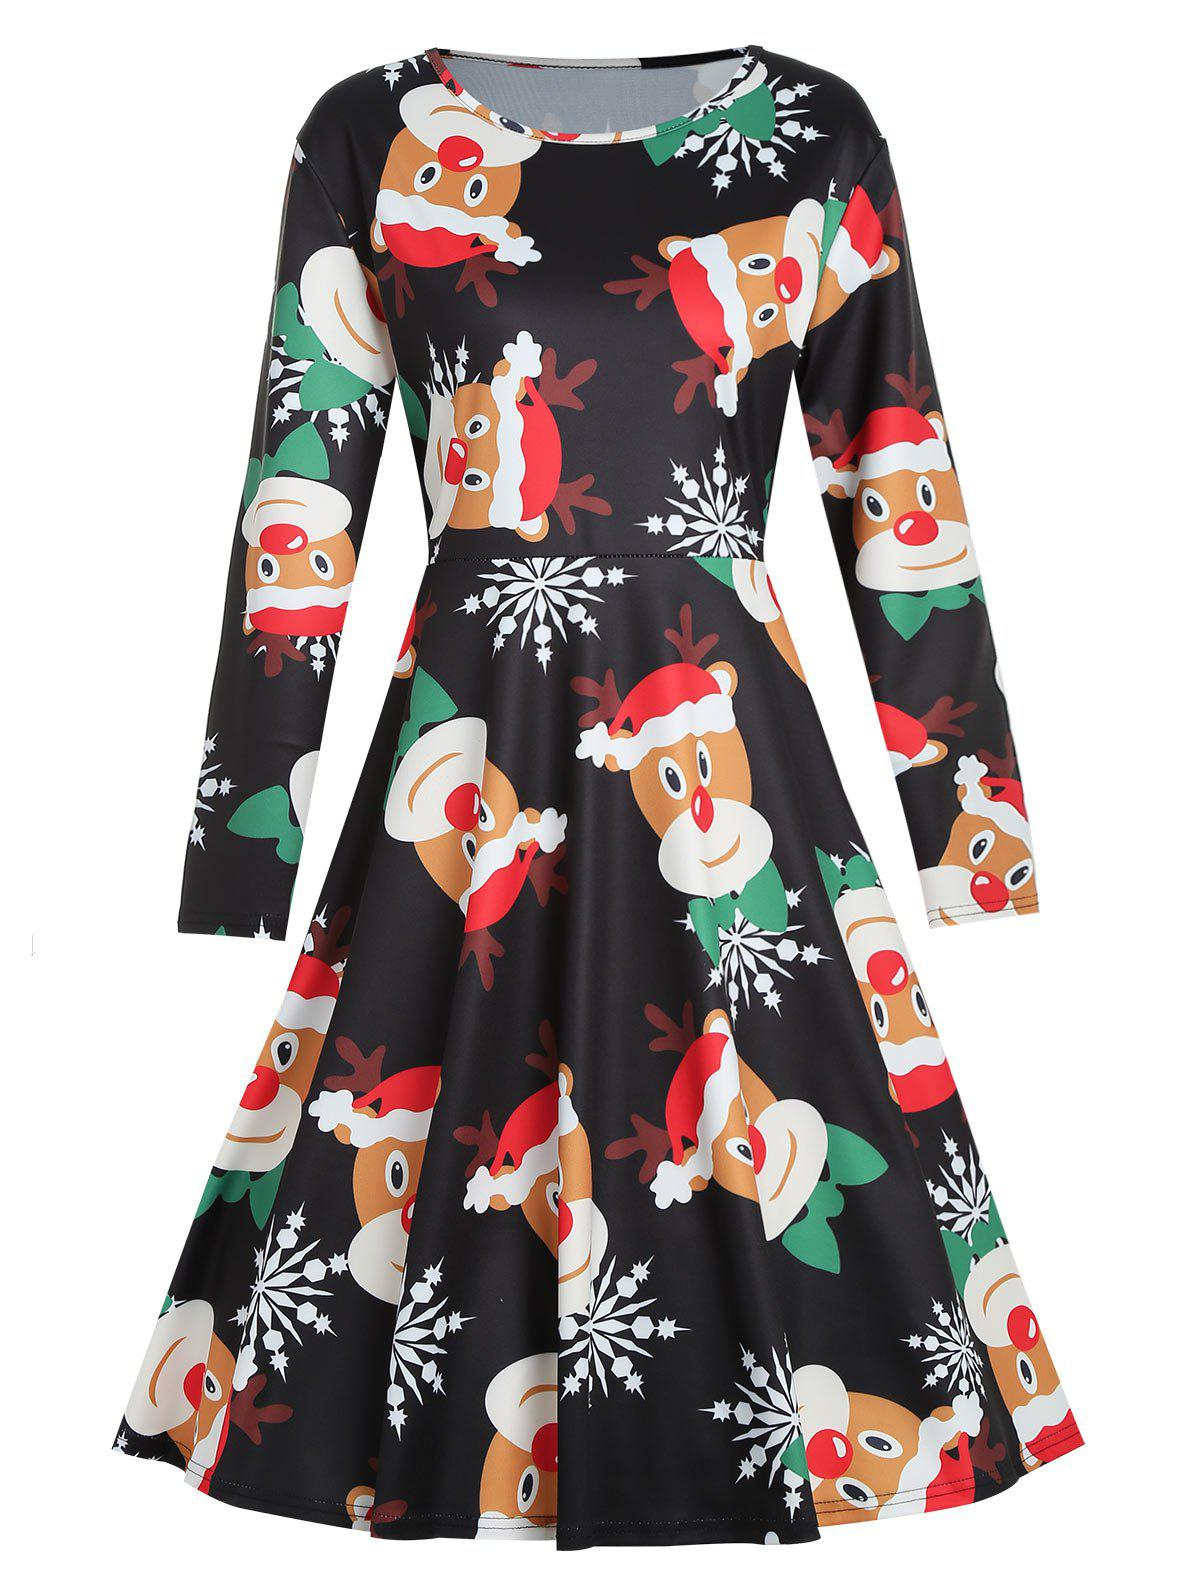 Chic Plus Size Reindeer Print Christmas Dress